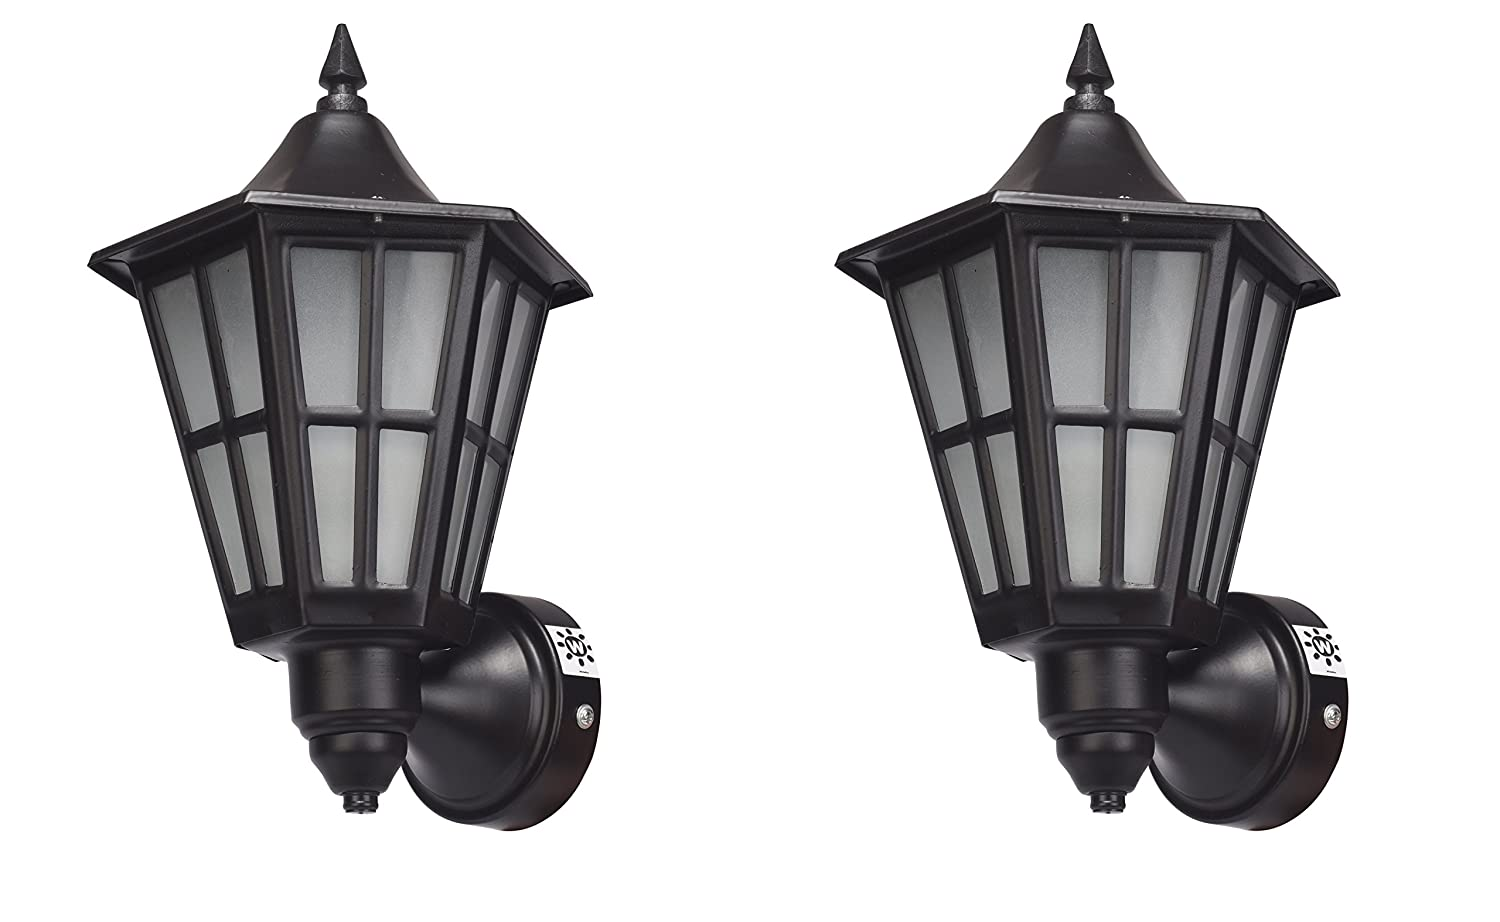 Whiteray Outdoor Purpose Traditional Black Wall Light(Set of 2)